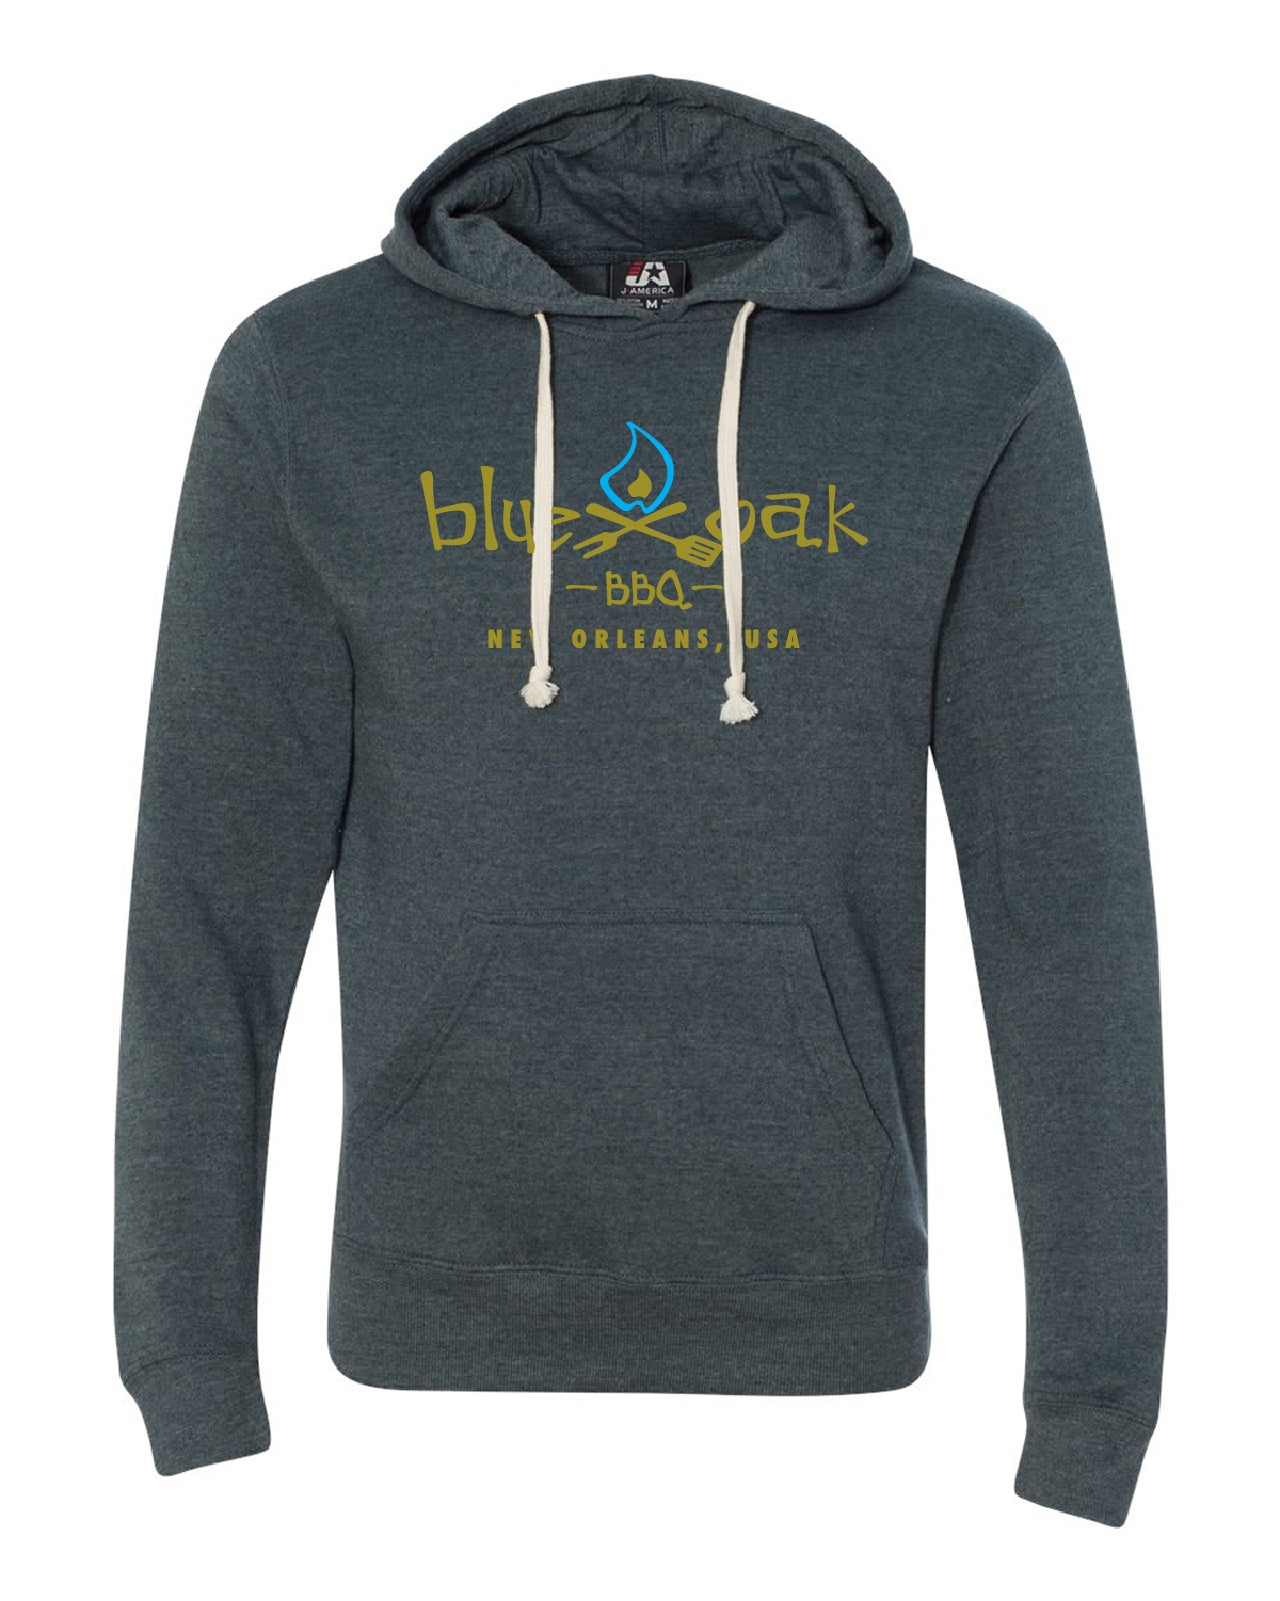 BLUE OAK BLUE AND GOLD HOODIE